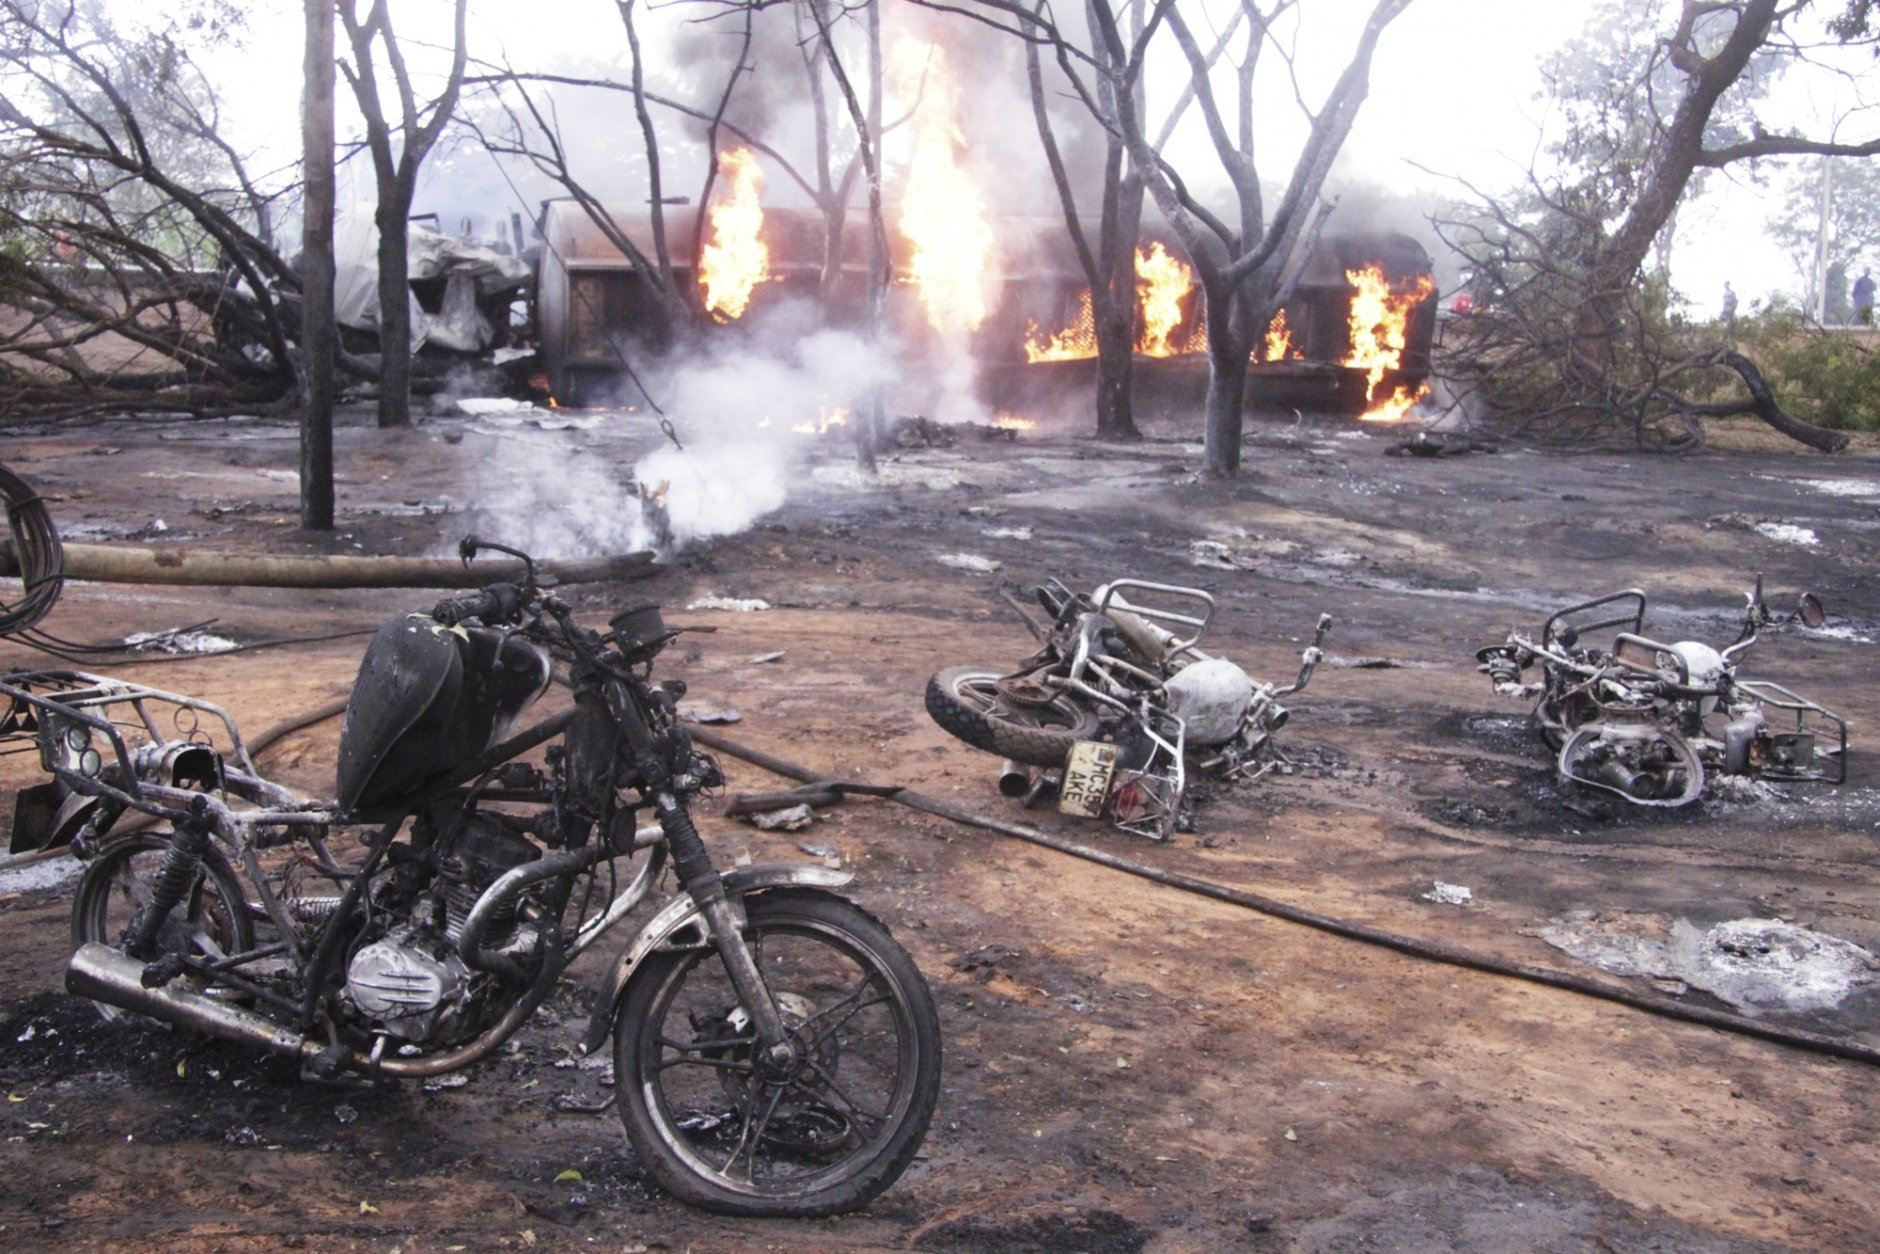 Destroyed motorbikes and debris litter the scene as a patrol tanker burns in the background, Saturday, Aug. 10 2019, in Morogoro, Tanzania.  A damaged tanker truck exploded in eastern Tanzania Saturday as people were trying to siphon fuel out of it, killing at least 62, in one of the worst incidents of its kind in the East African country. (AP Photo)